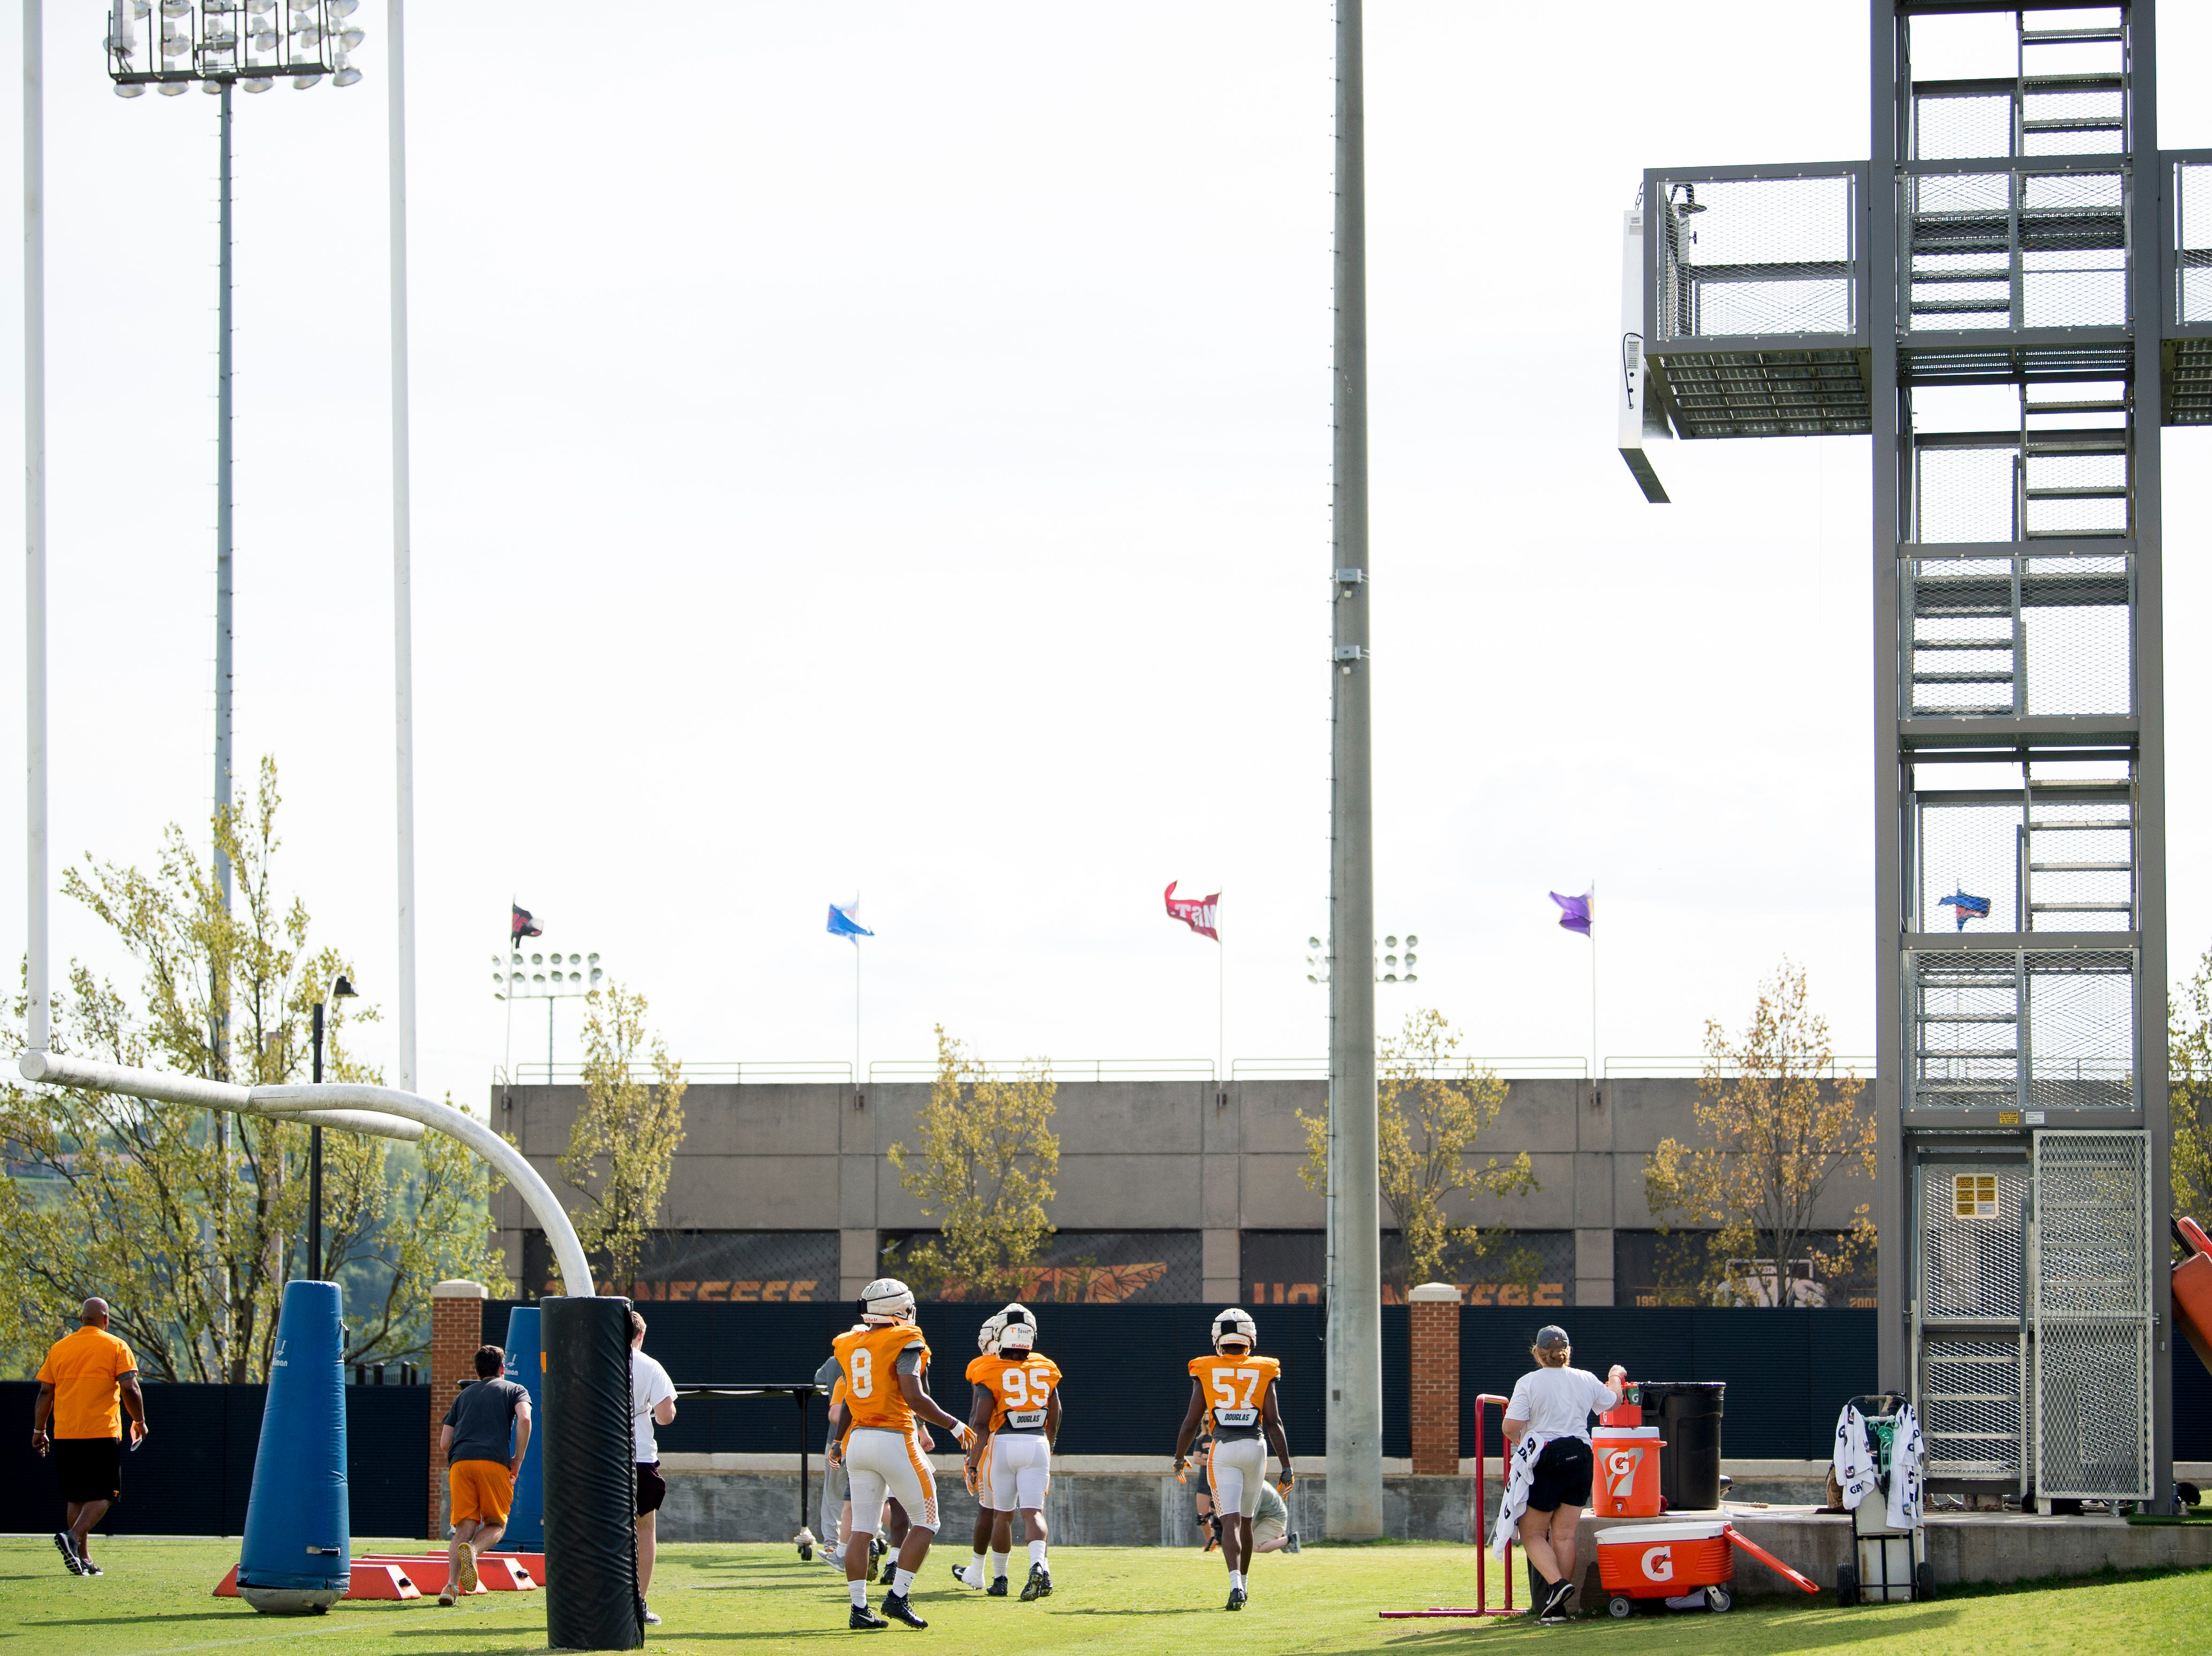 Players on the field during Tennessee spring practice at Haslam Field in Knoxville, Tennessee on Thursday, April 11, 2019.